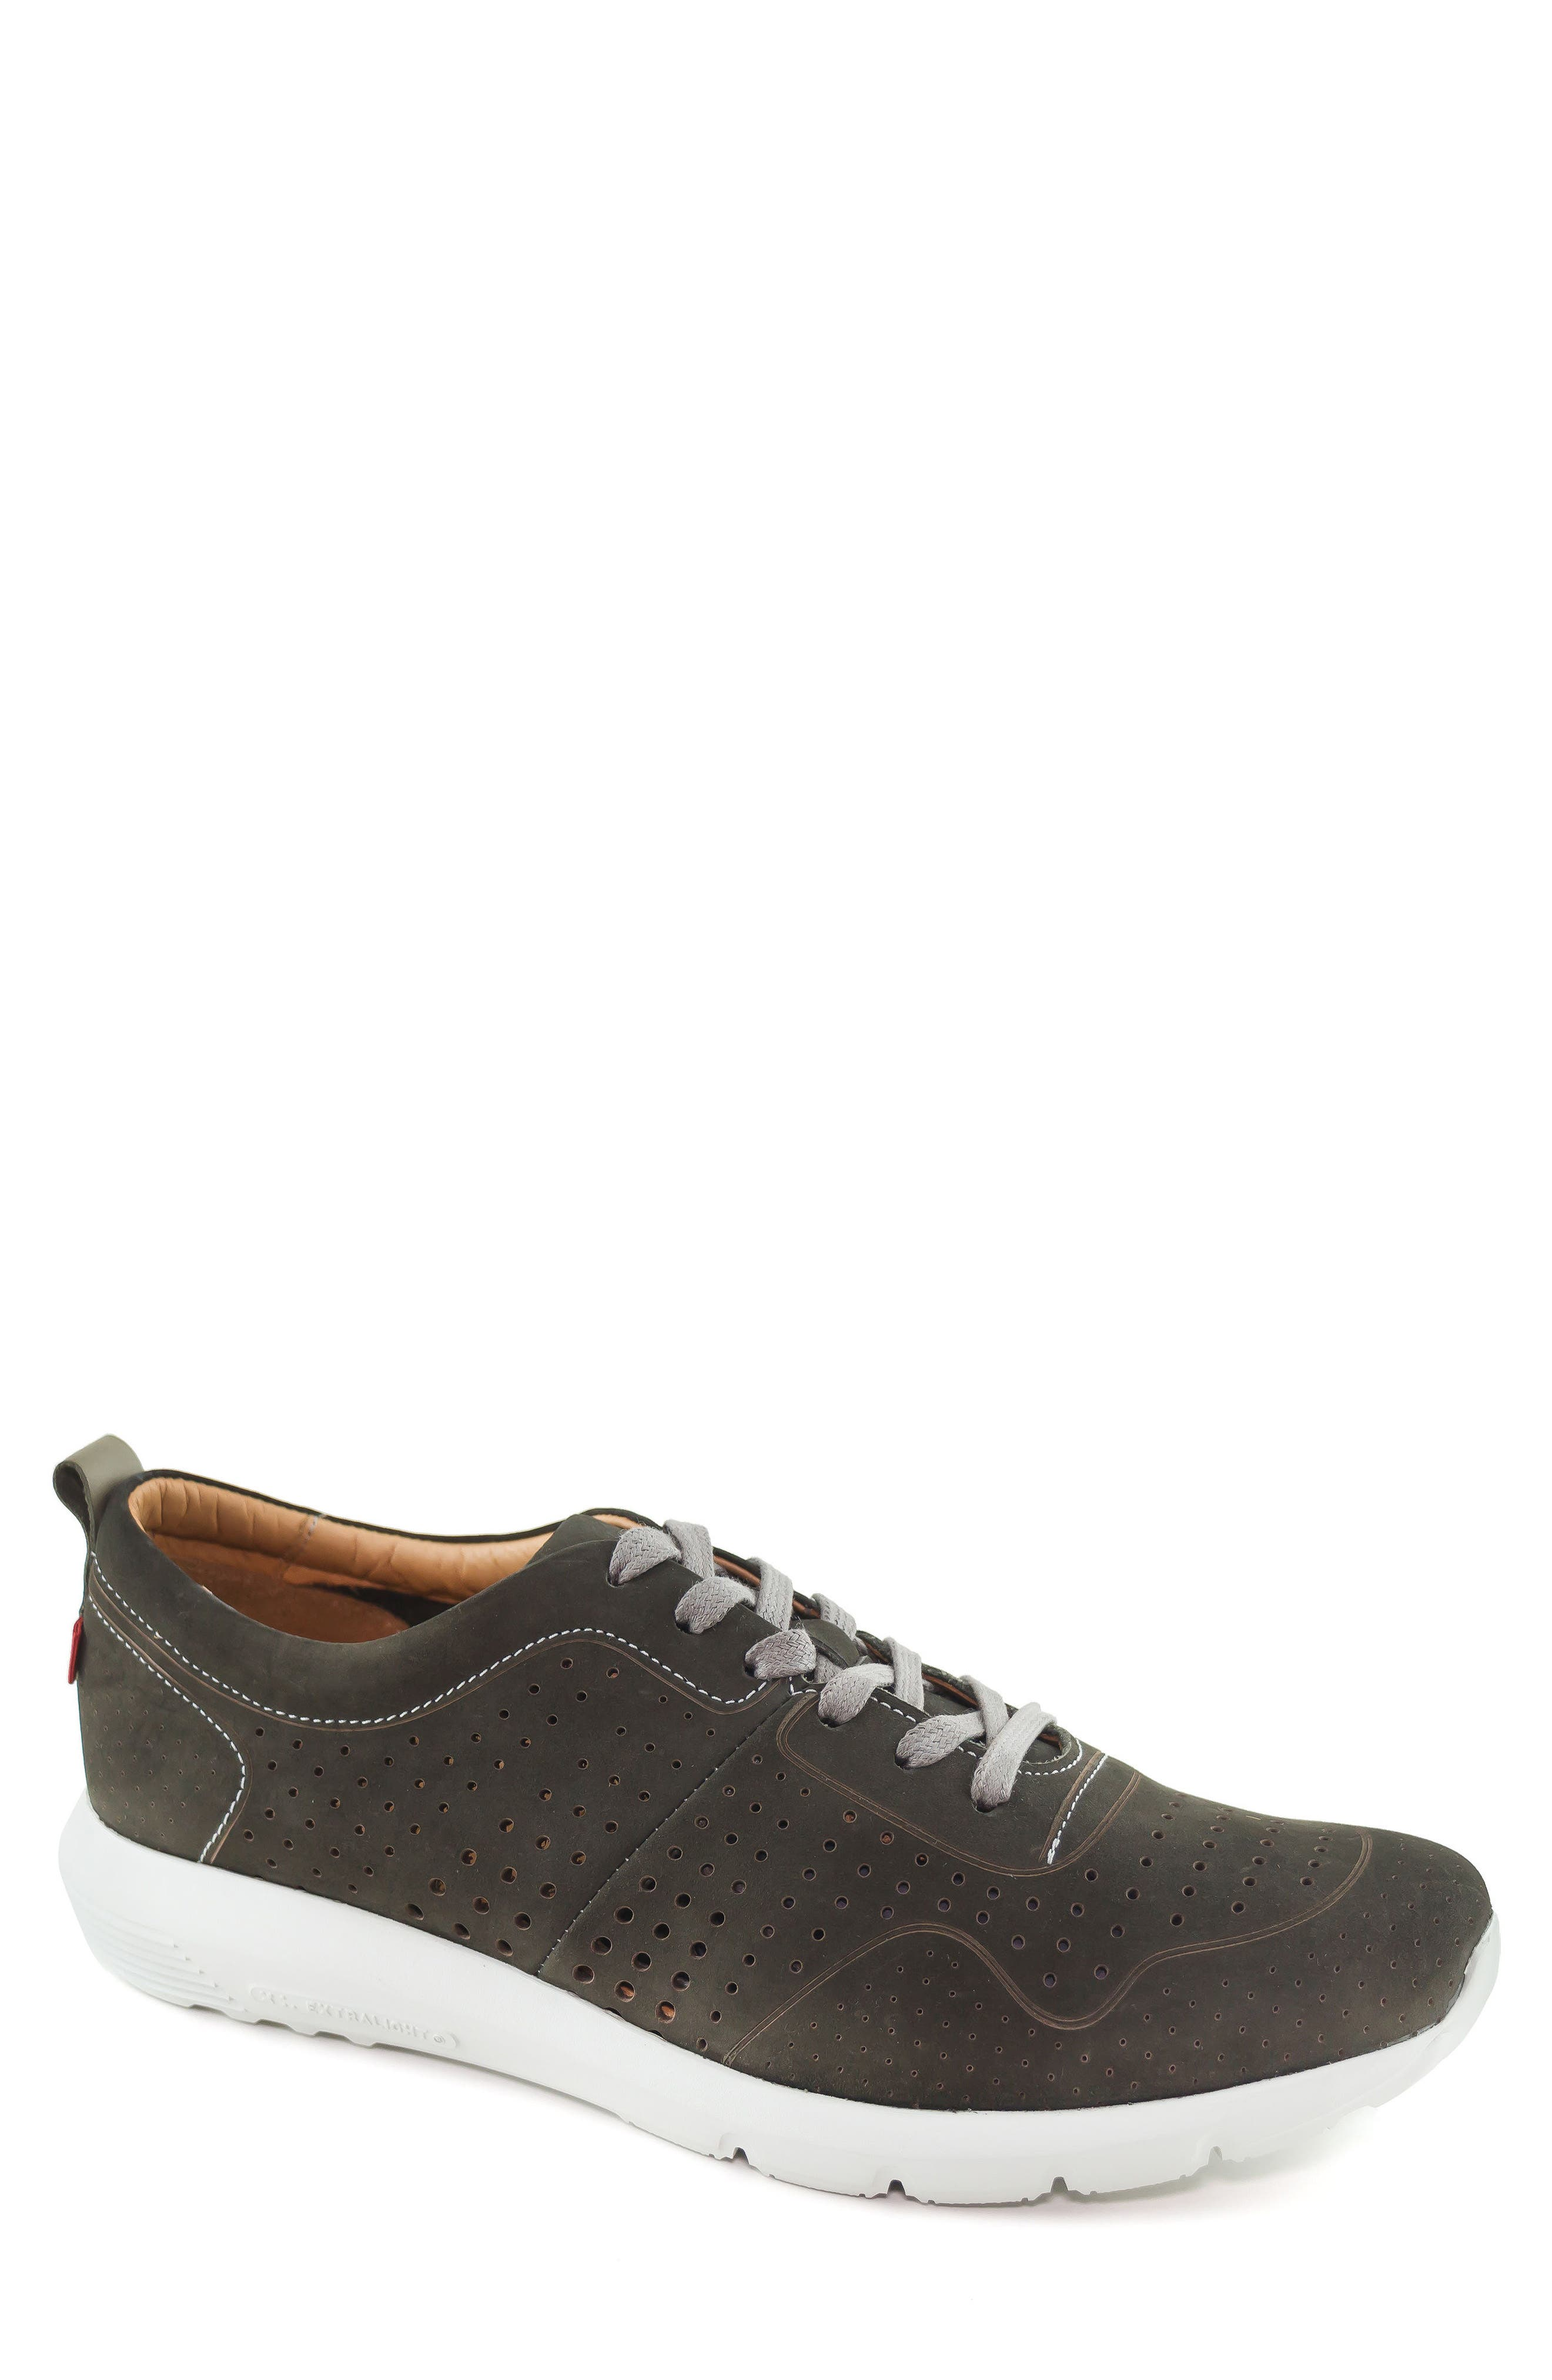 Marc Joseph New York Grand Central Perforated Sneaker- Grey